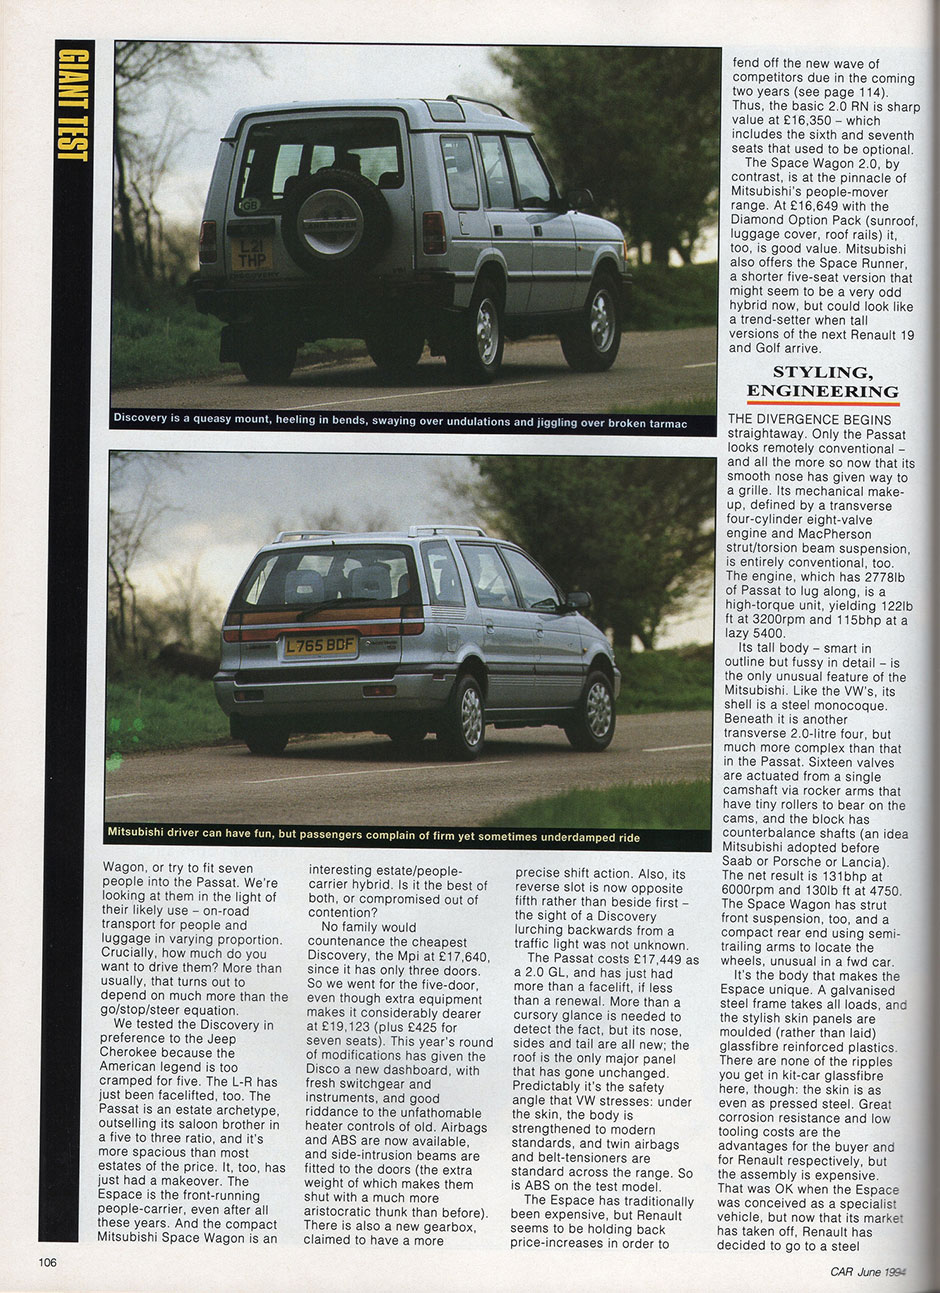 Land Rover Discovery, Mitsubishi Space Wagon, Renault Espace, VW Passat GL Estate